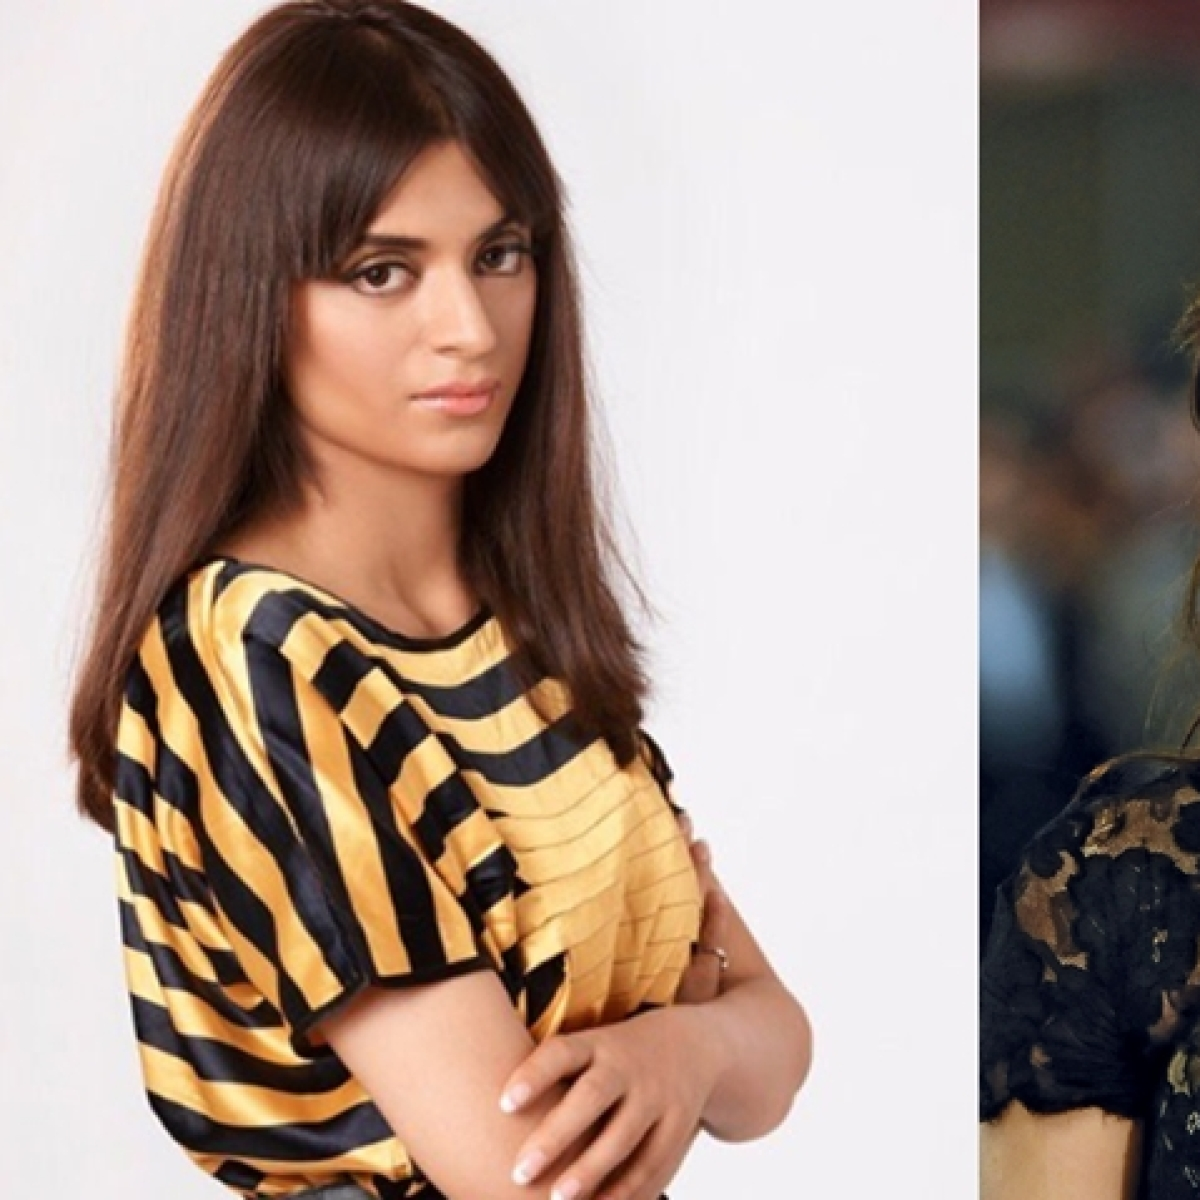 Twitter compares Rangoli Chandel's throwback picture to Penelope Cruz